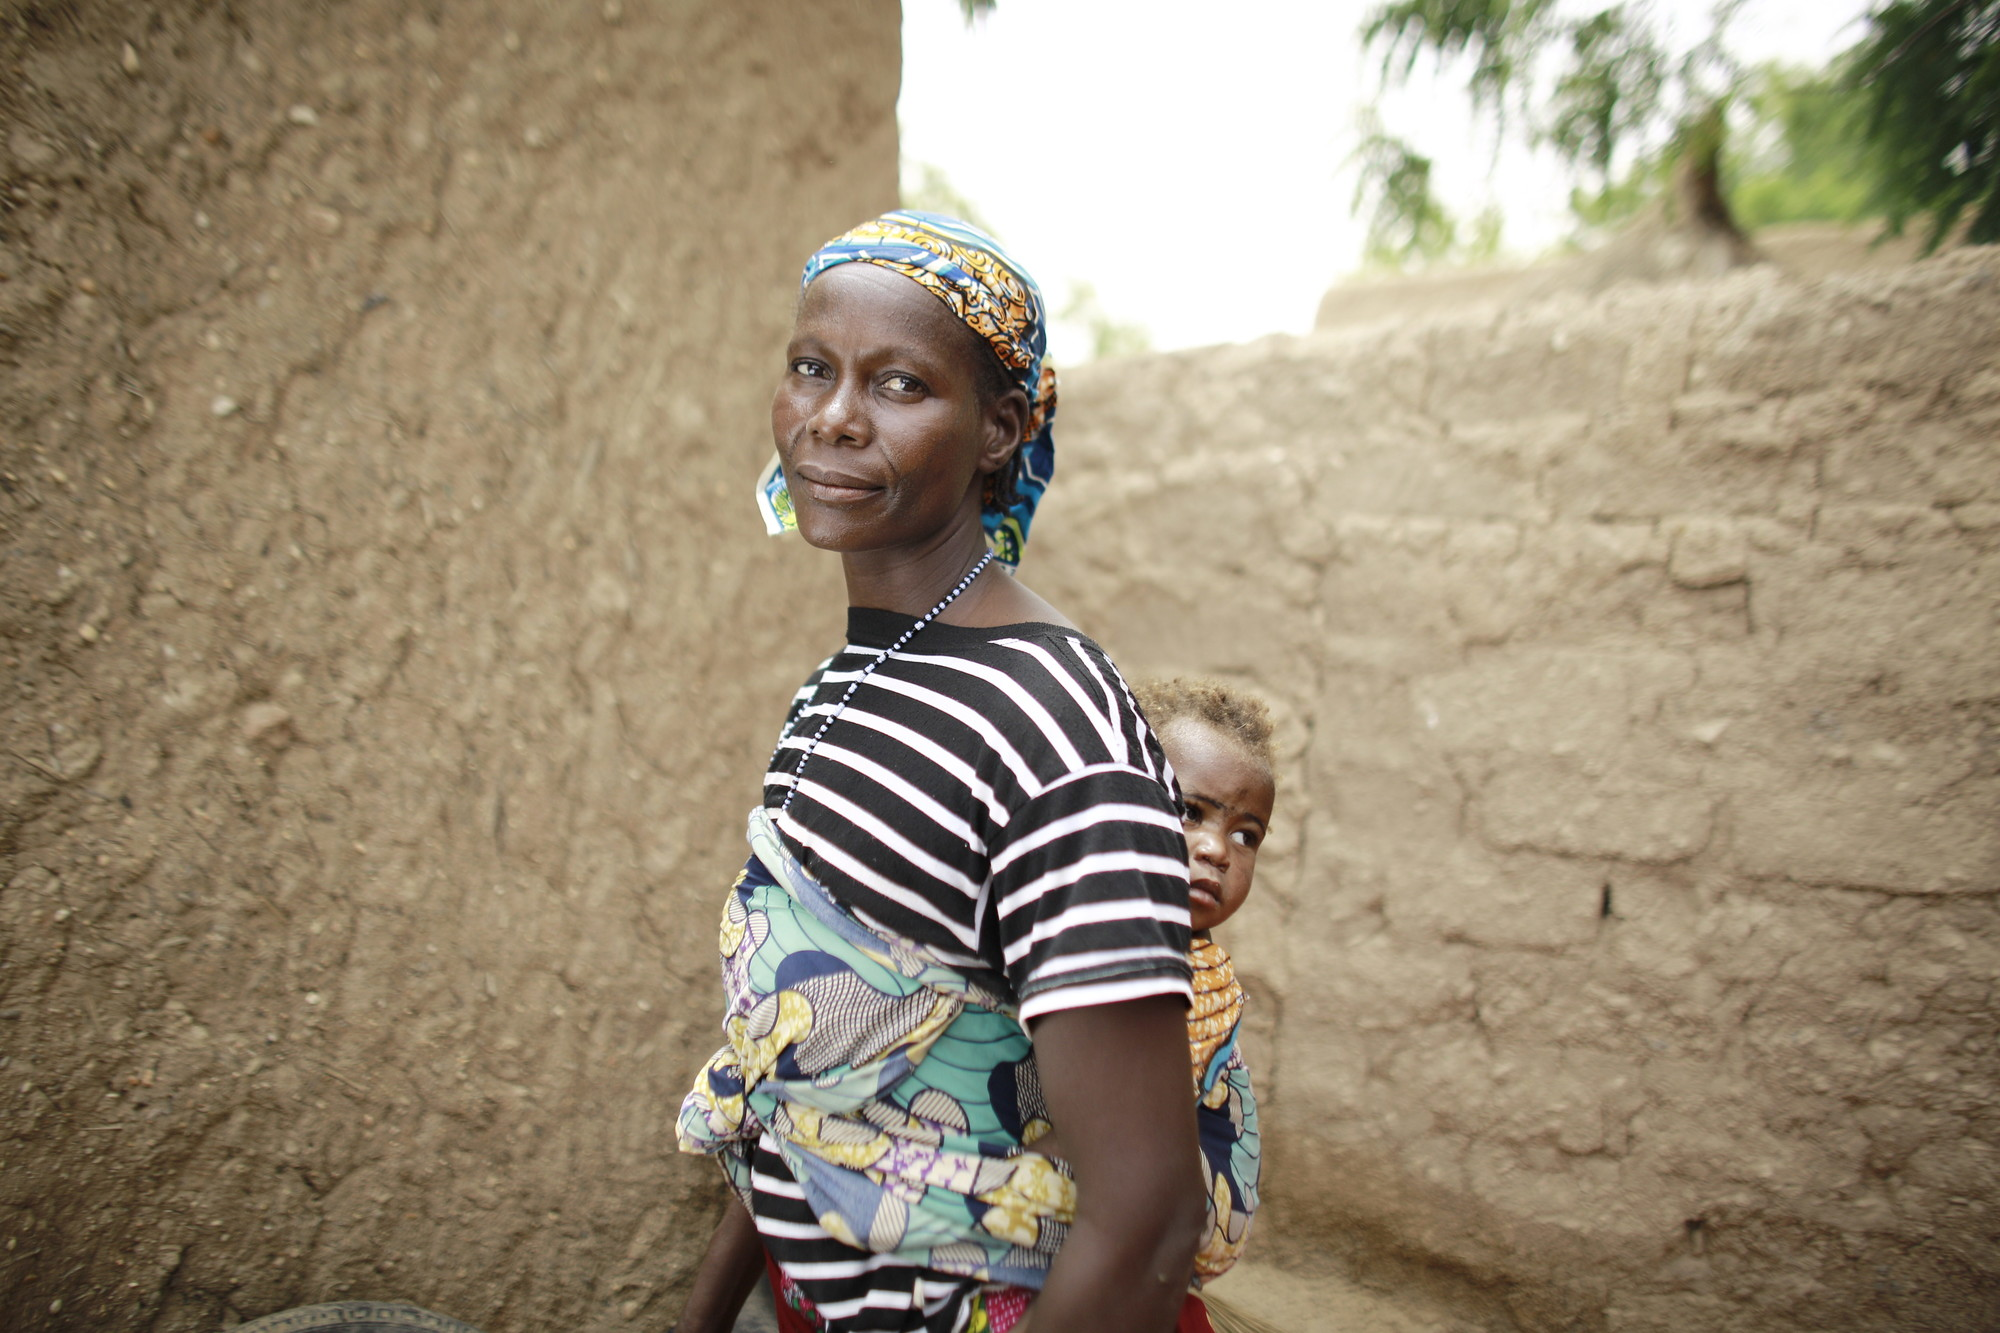 A woman with a child on her back stands outside in front of a wall